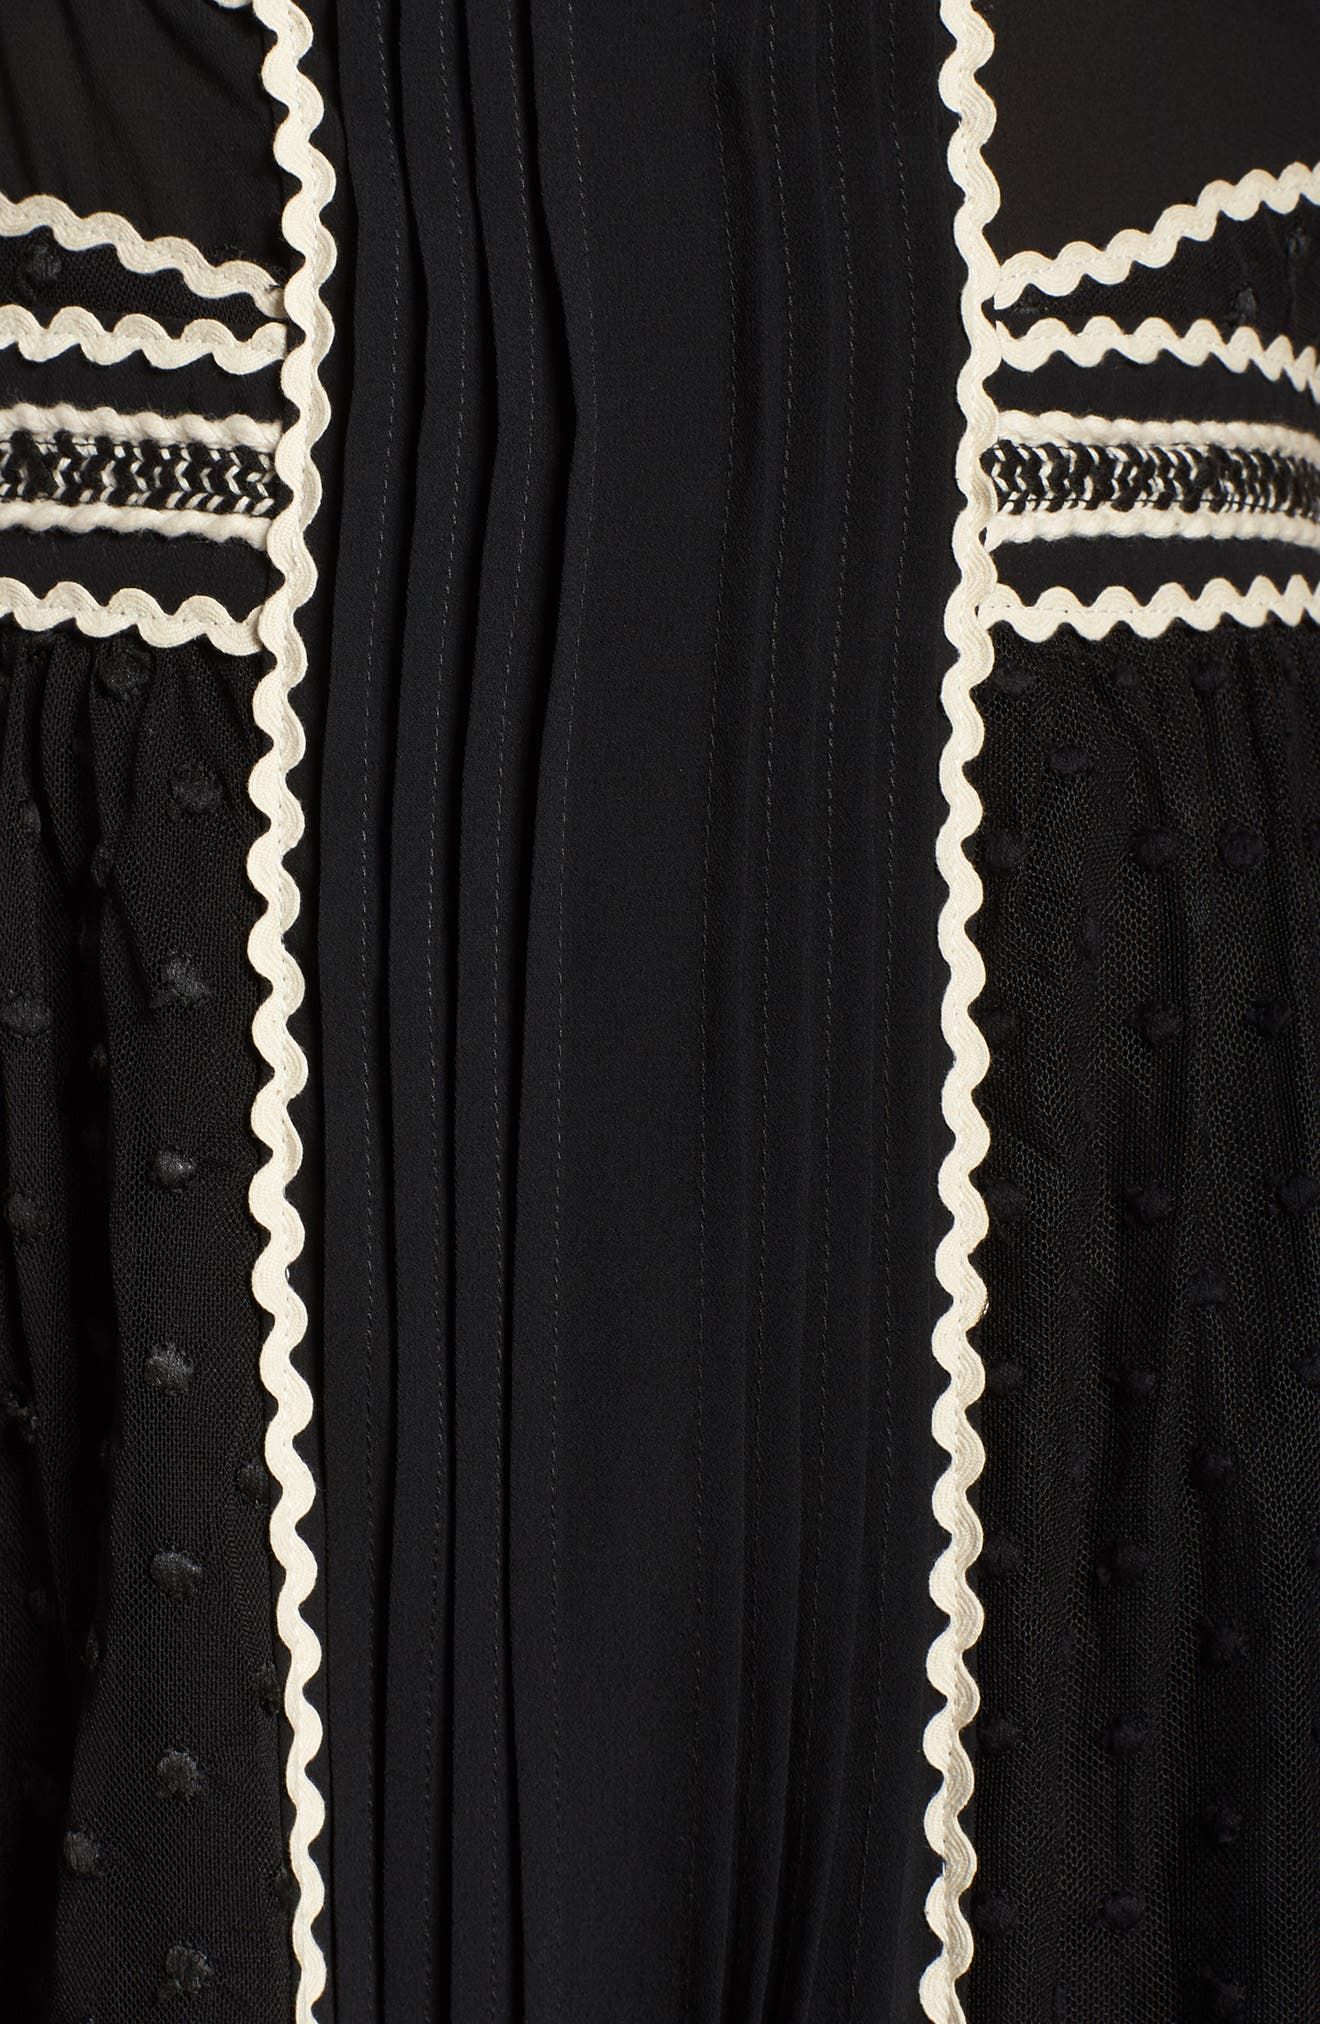 Embroidered Dot Gown,                             Alternate thumbnail 6, color,                             Black/ Ivory